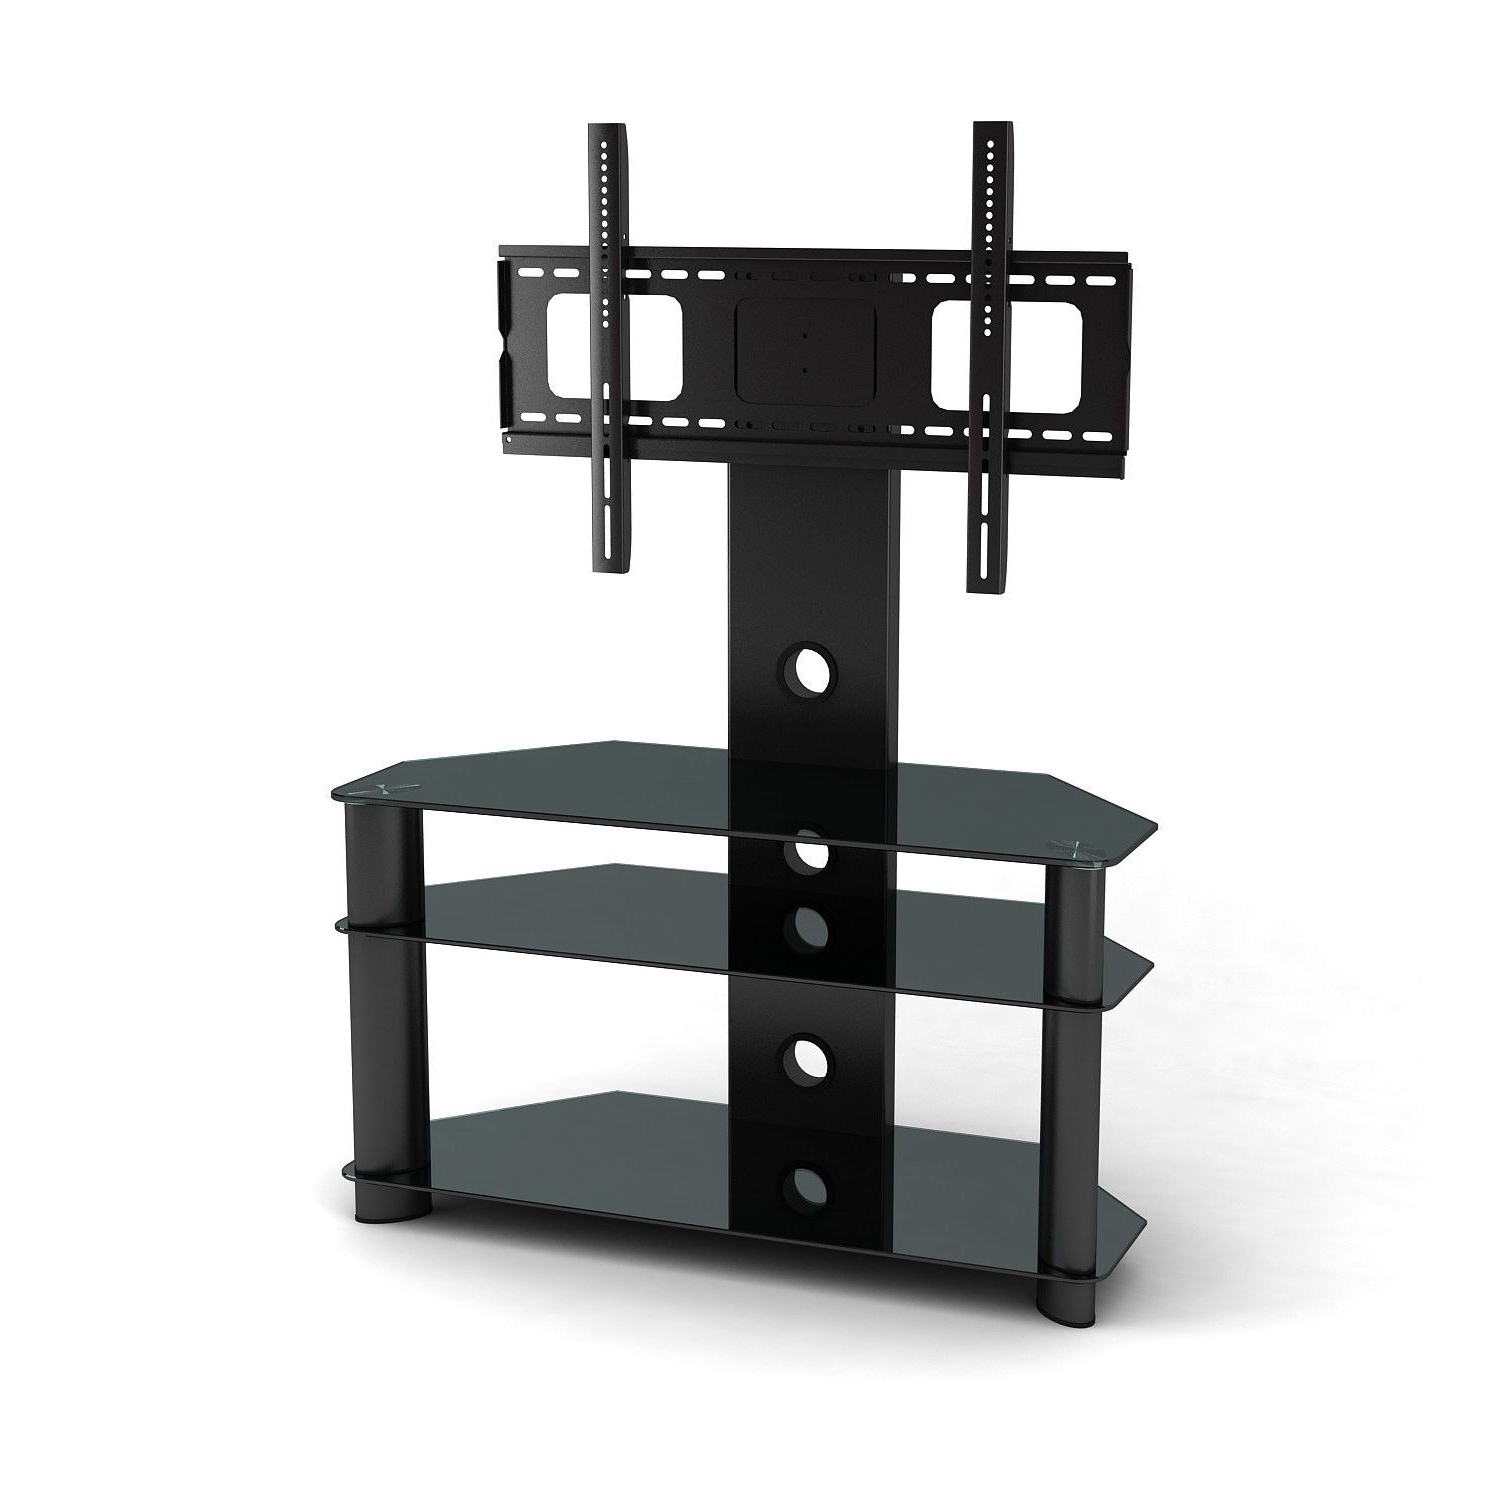 55 Inch Tv Stand With Mount Mounts Tilt And Swivel Stands For Flat Pertaining To Trendy Swivel Black Glass Tv Stands (View 3 of 20)